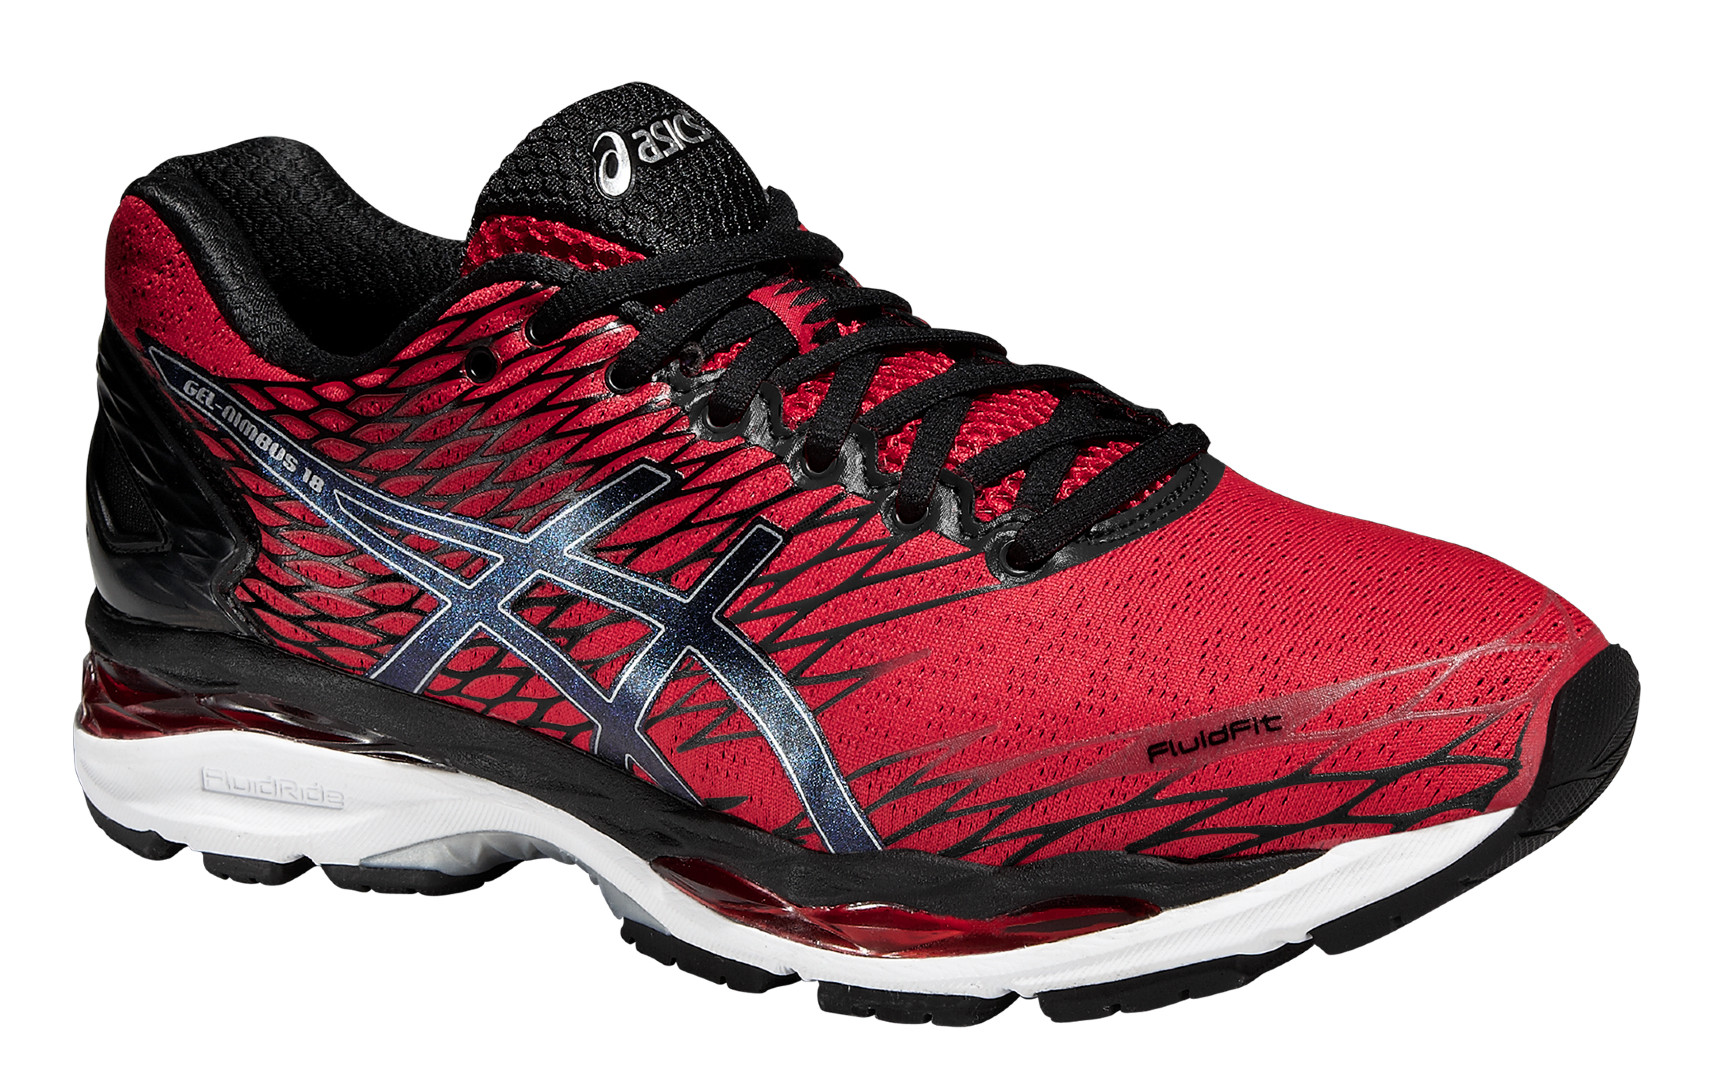 Mens Shoes Gel Nimbus 18 A3 Neutral colore Black Red - Asics - SportIT.com 3ff80712005